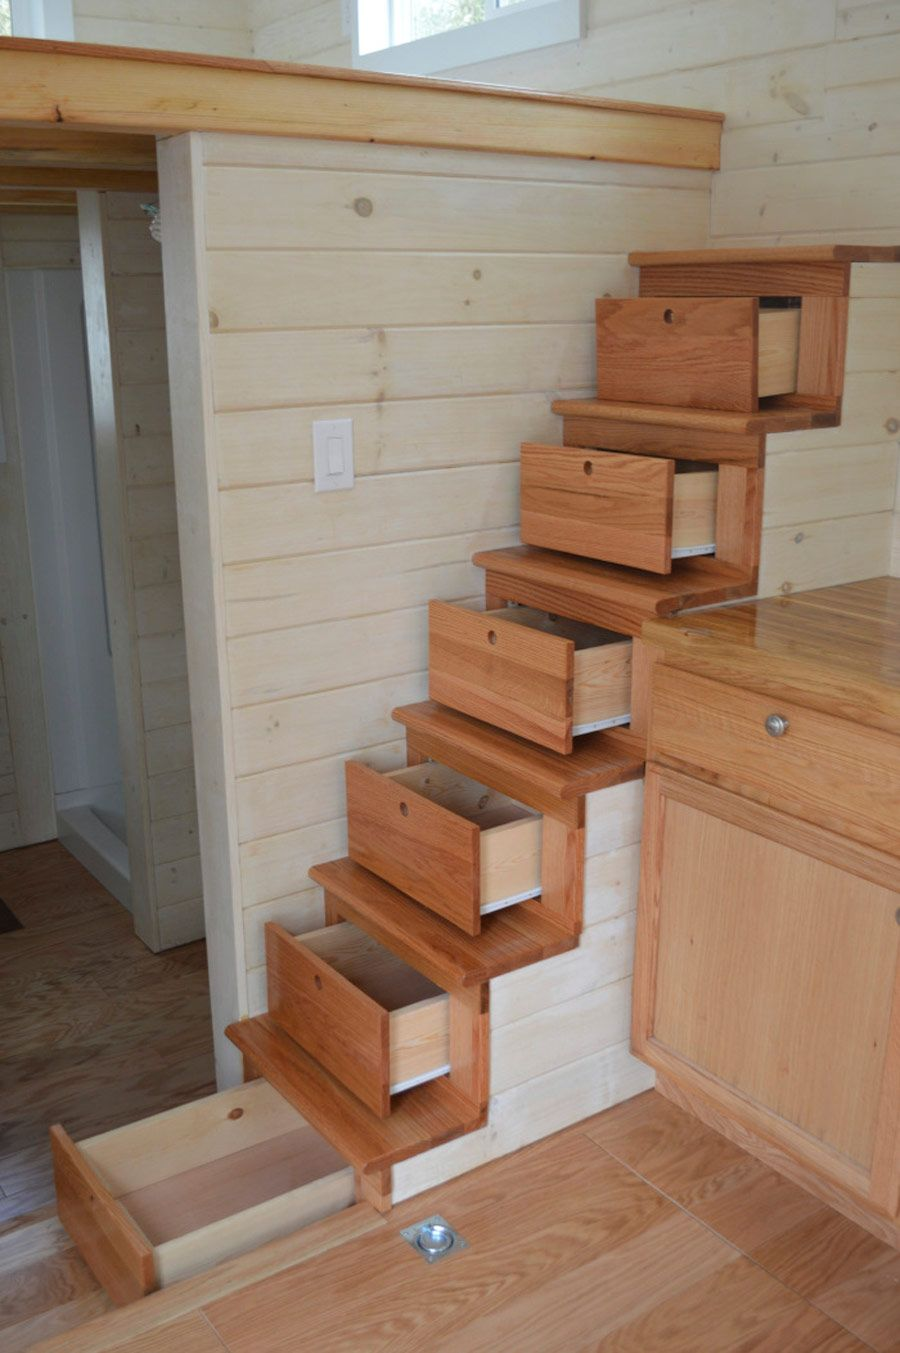 Loft bedroom staircase  A themed tiny house on wheels in Brevard North Carolina Designed